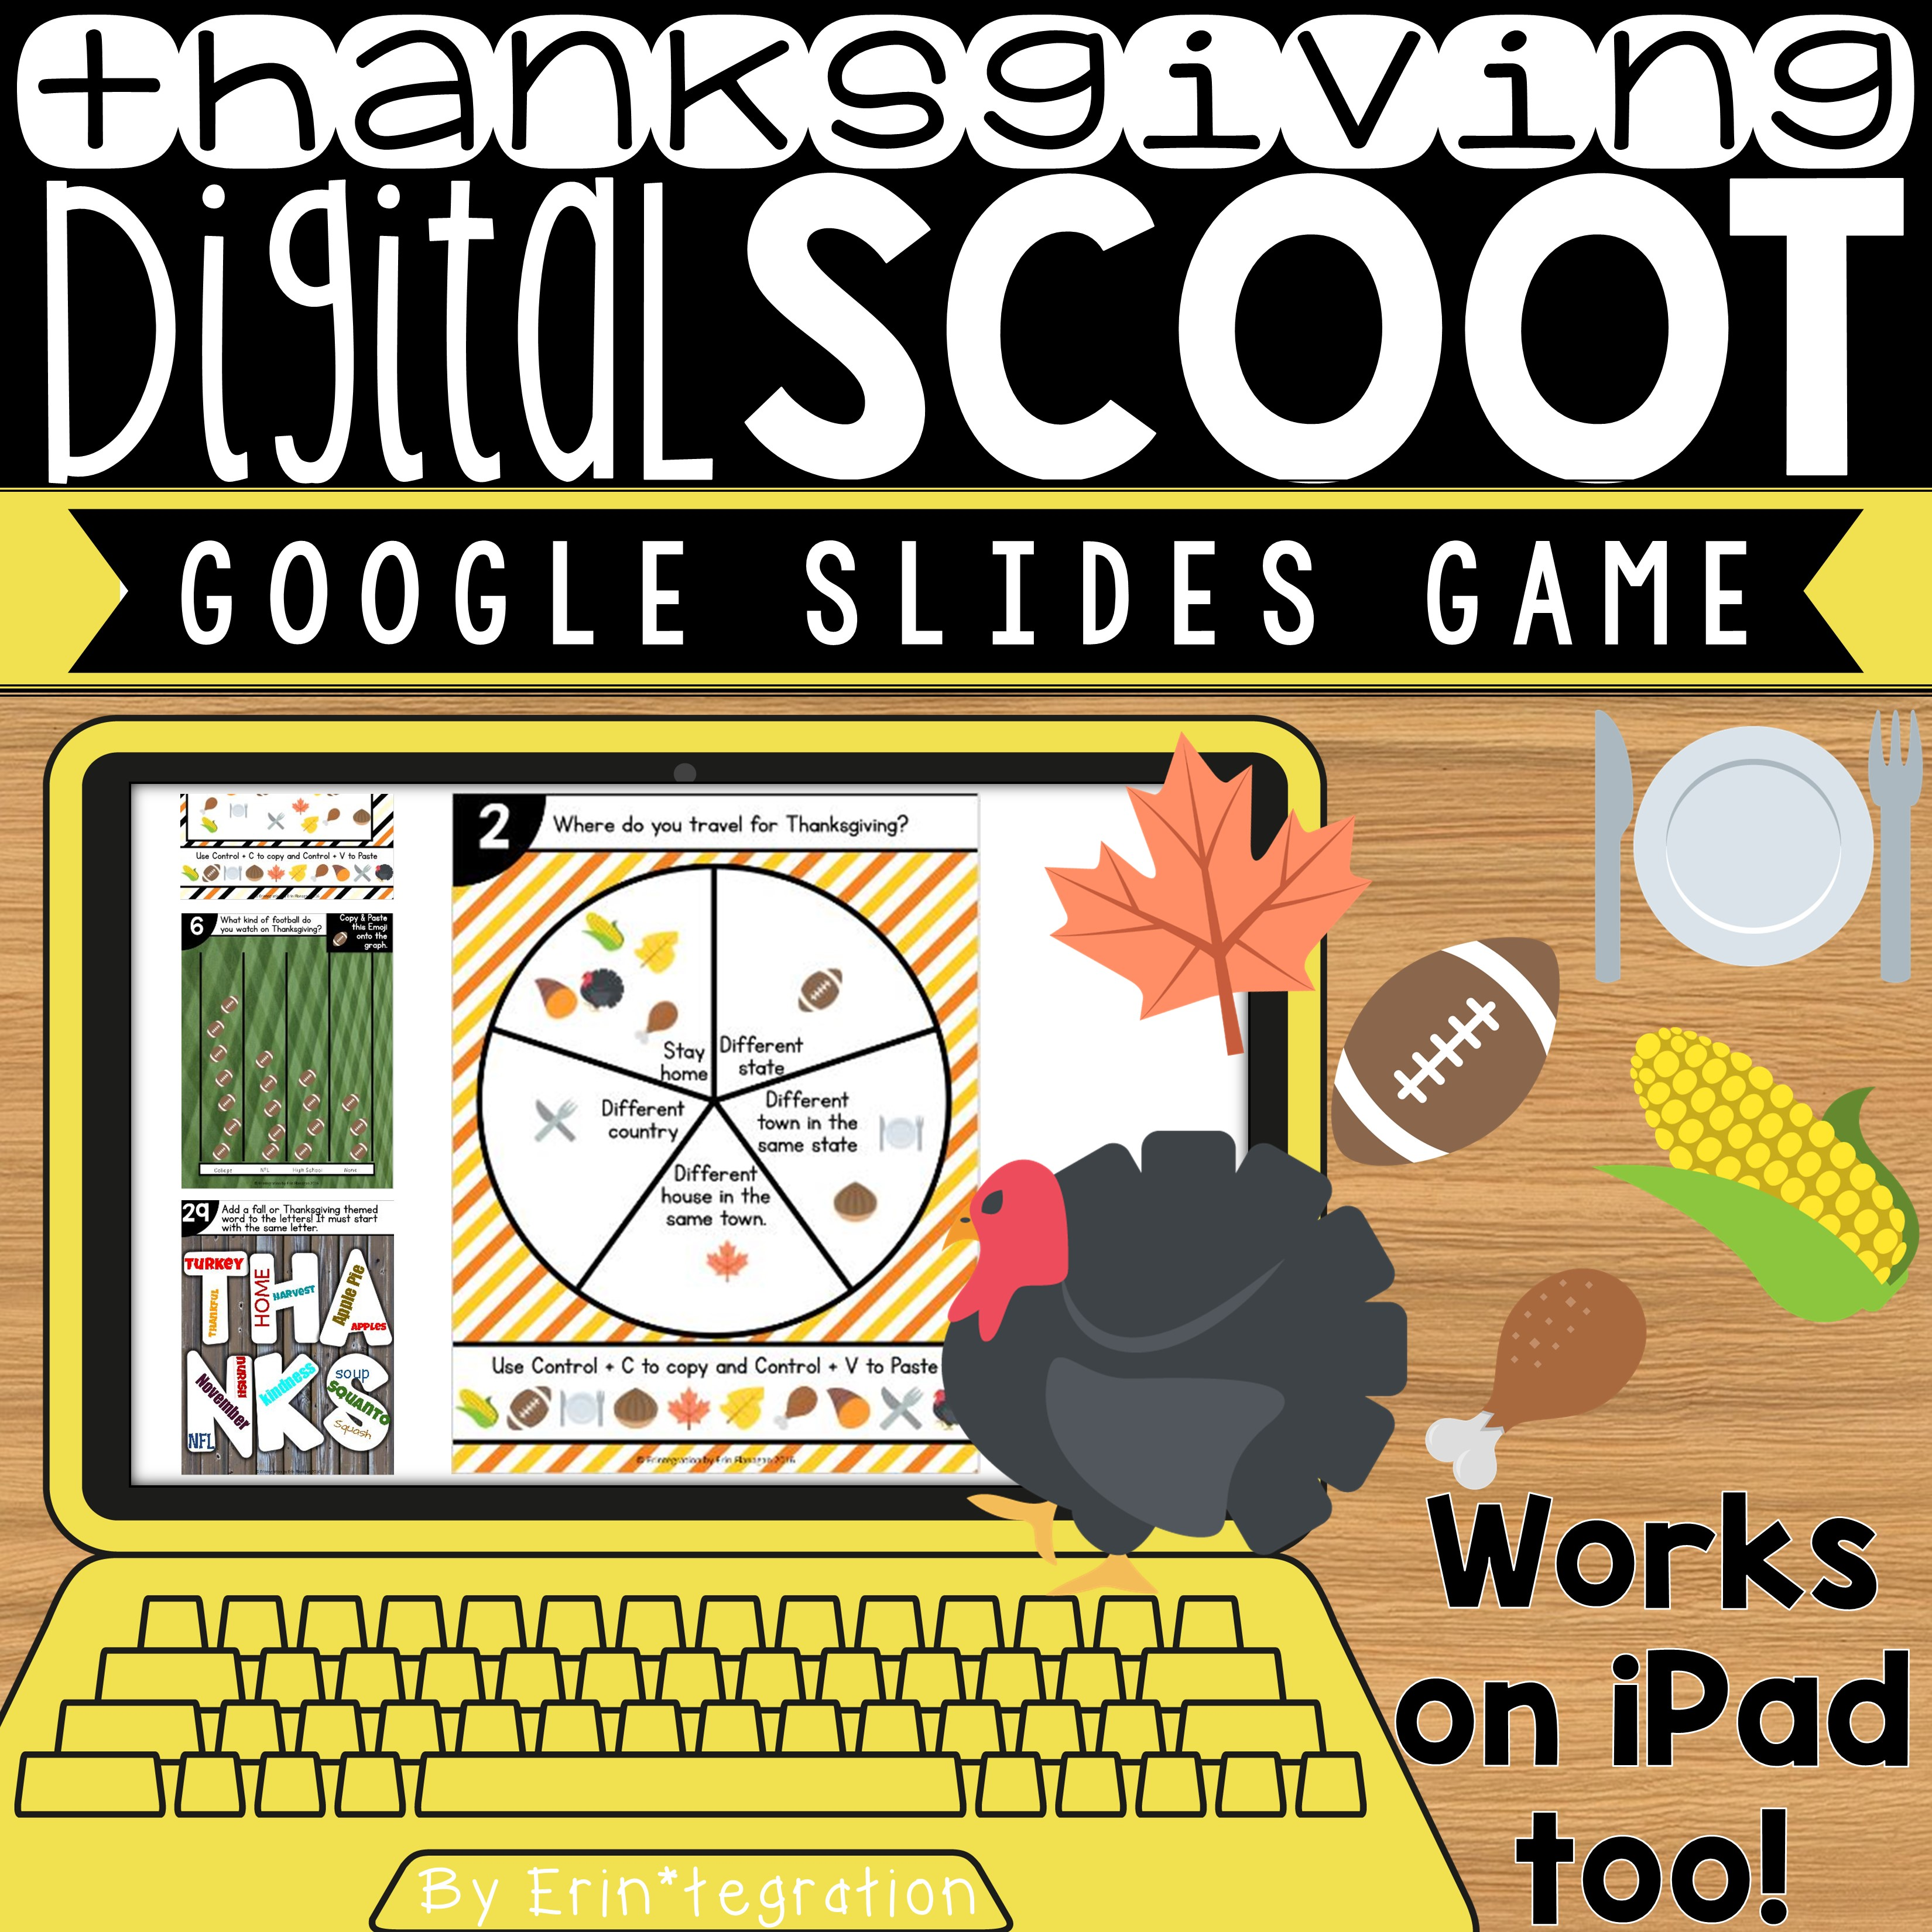 Erintegration Thanksgiving Digital Scoot Game for Google Slides